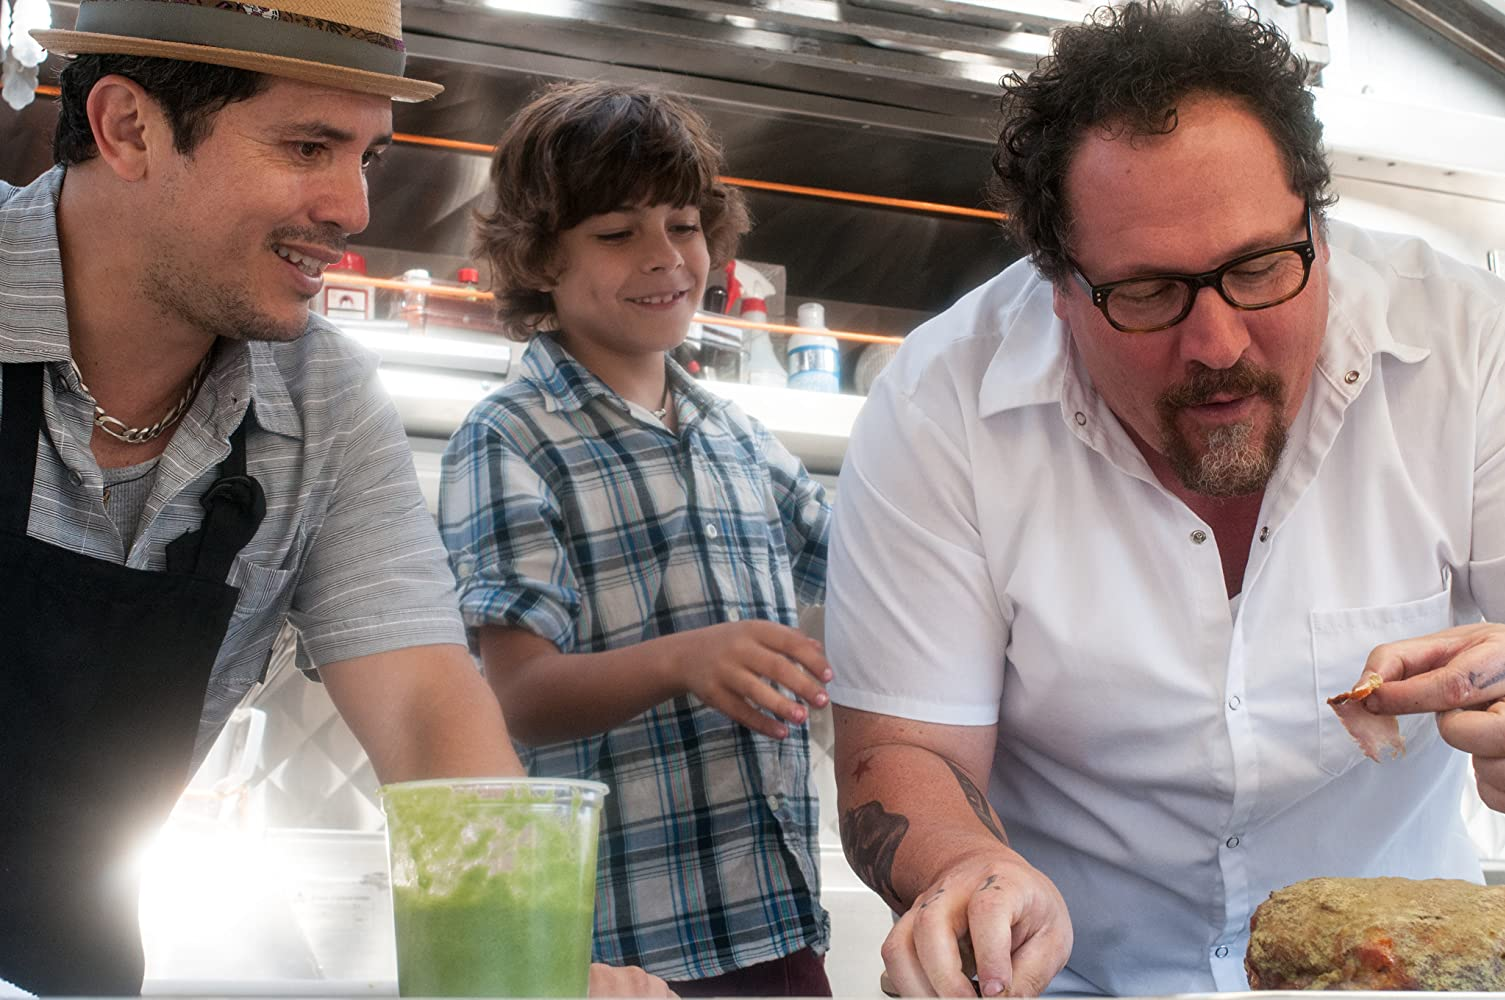 John Leguizamo, Jon Favreau, and Emjay Anthony in Chef (2014)